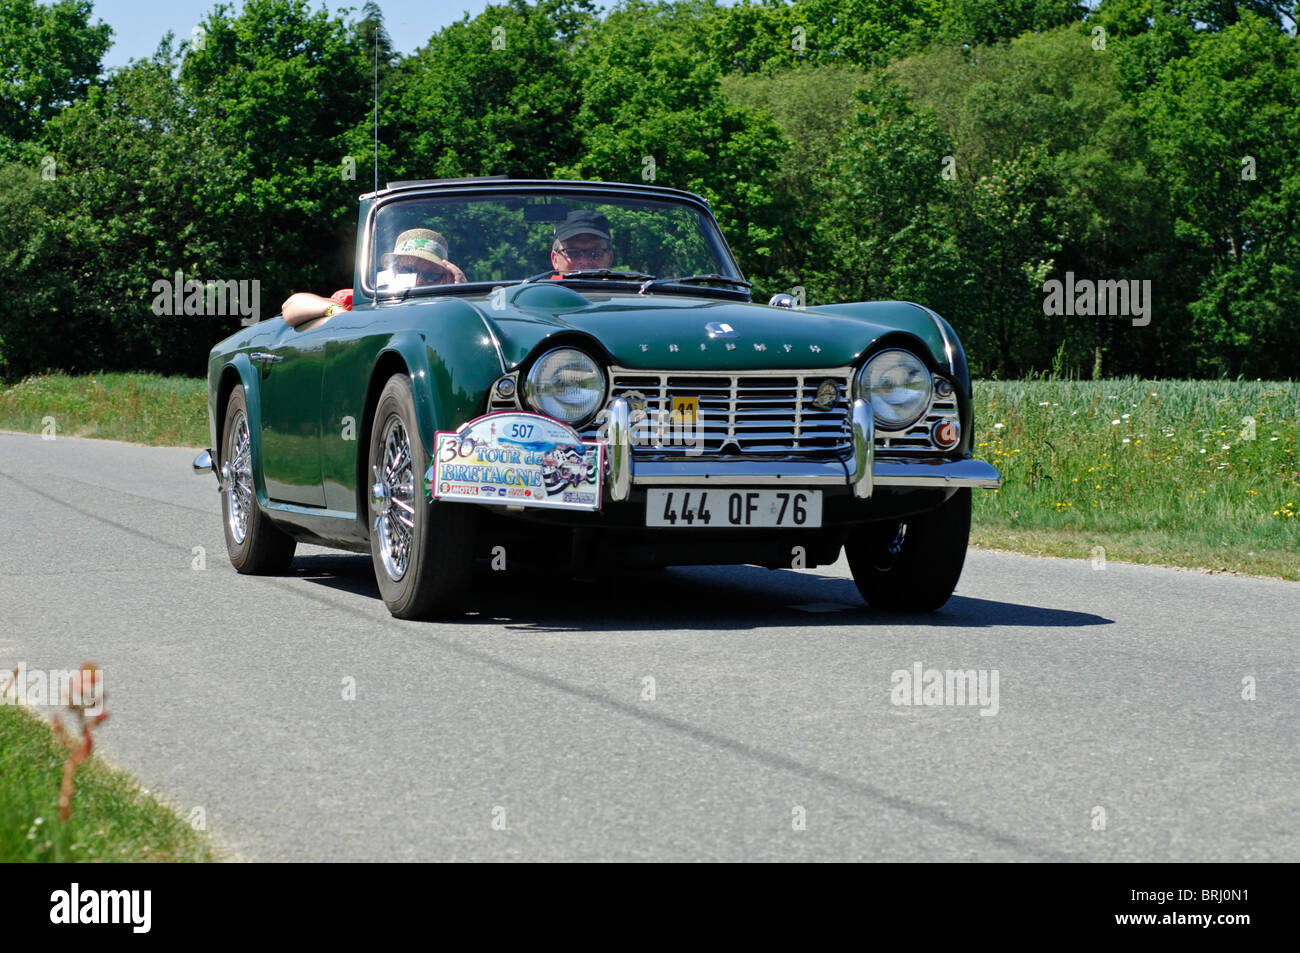 Triumph Tr4 1963 In The Tour De Bretagne Classic Car Rally 2010